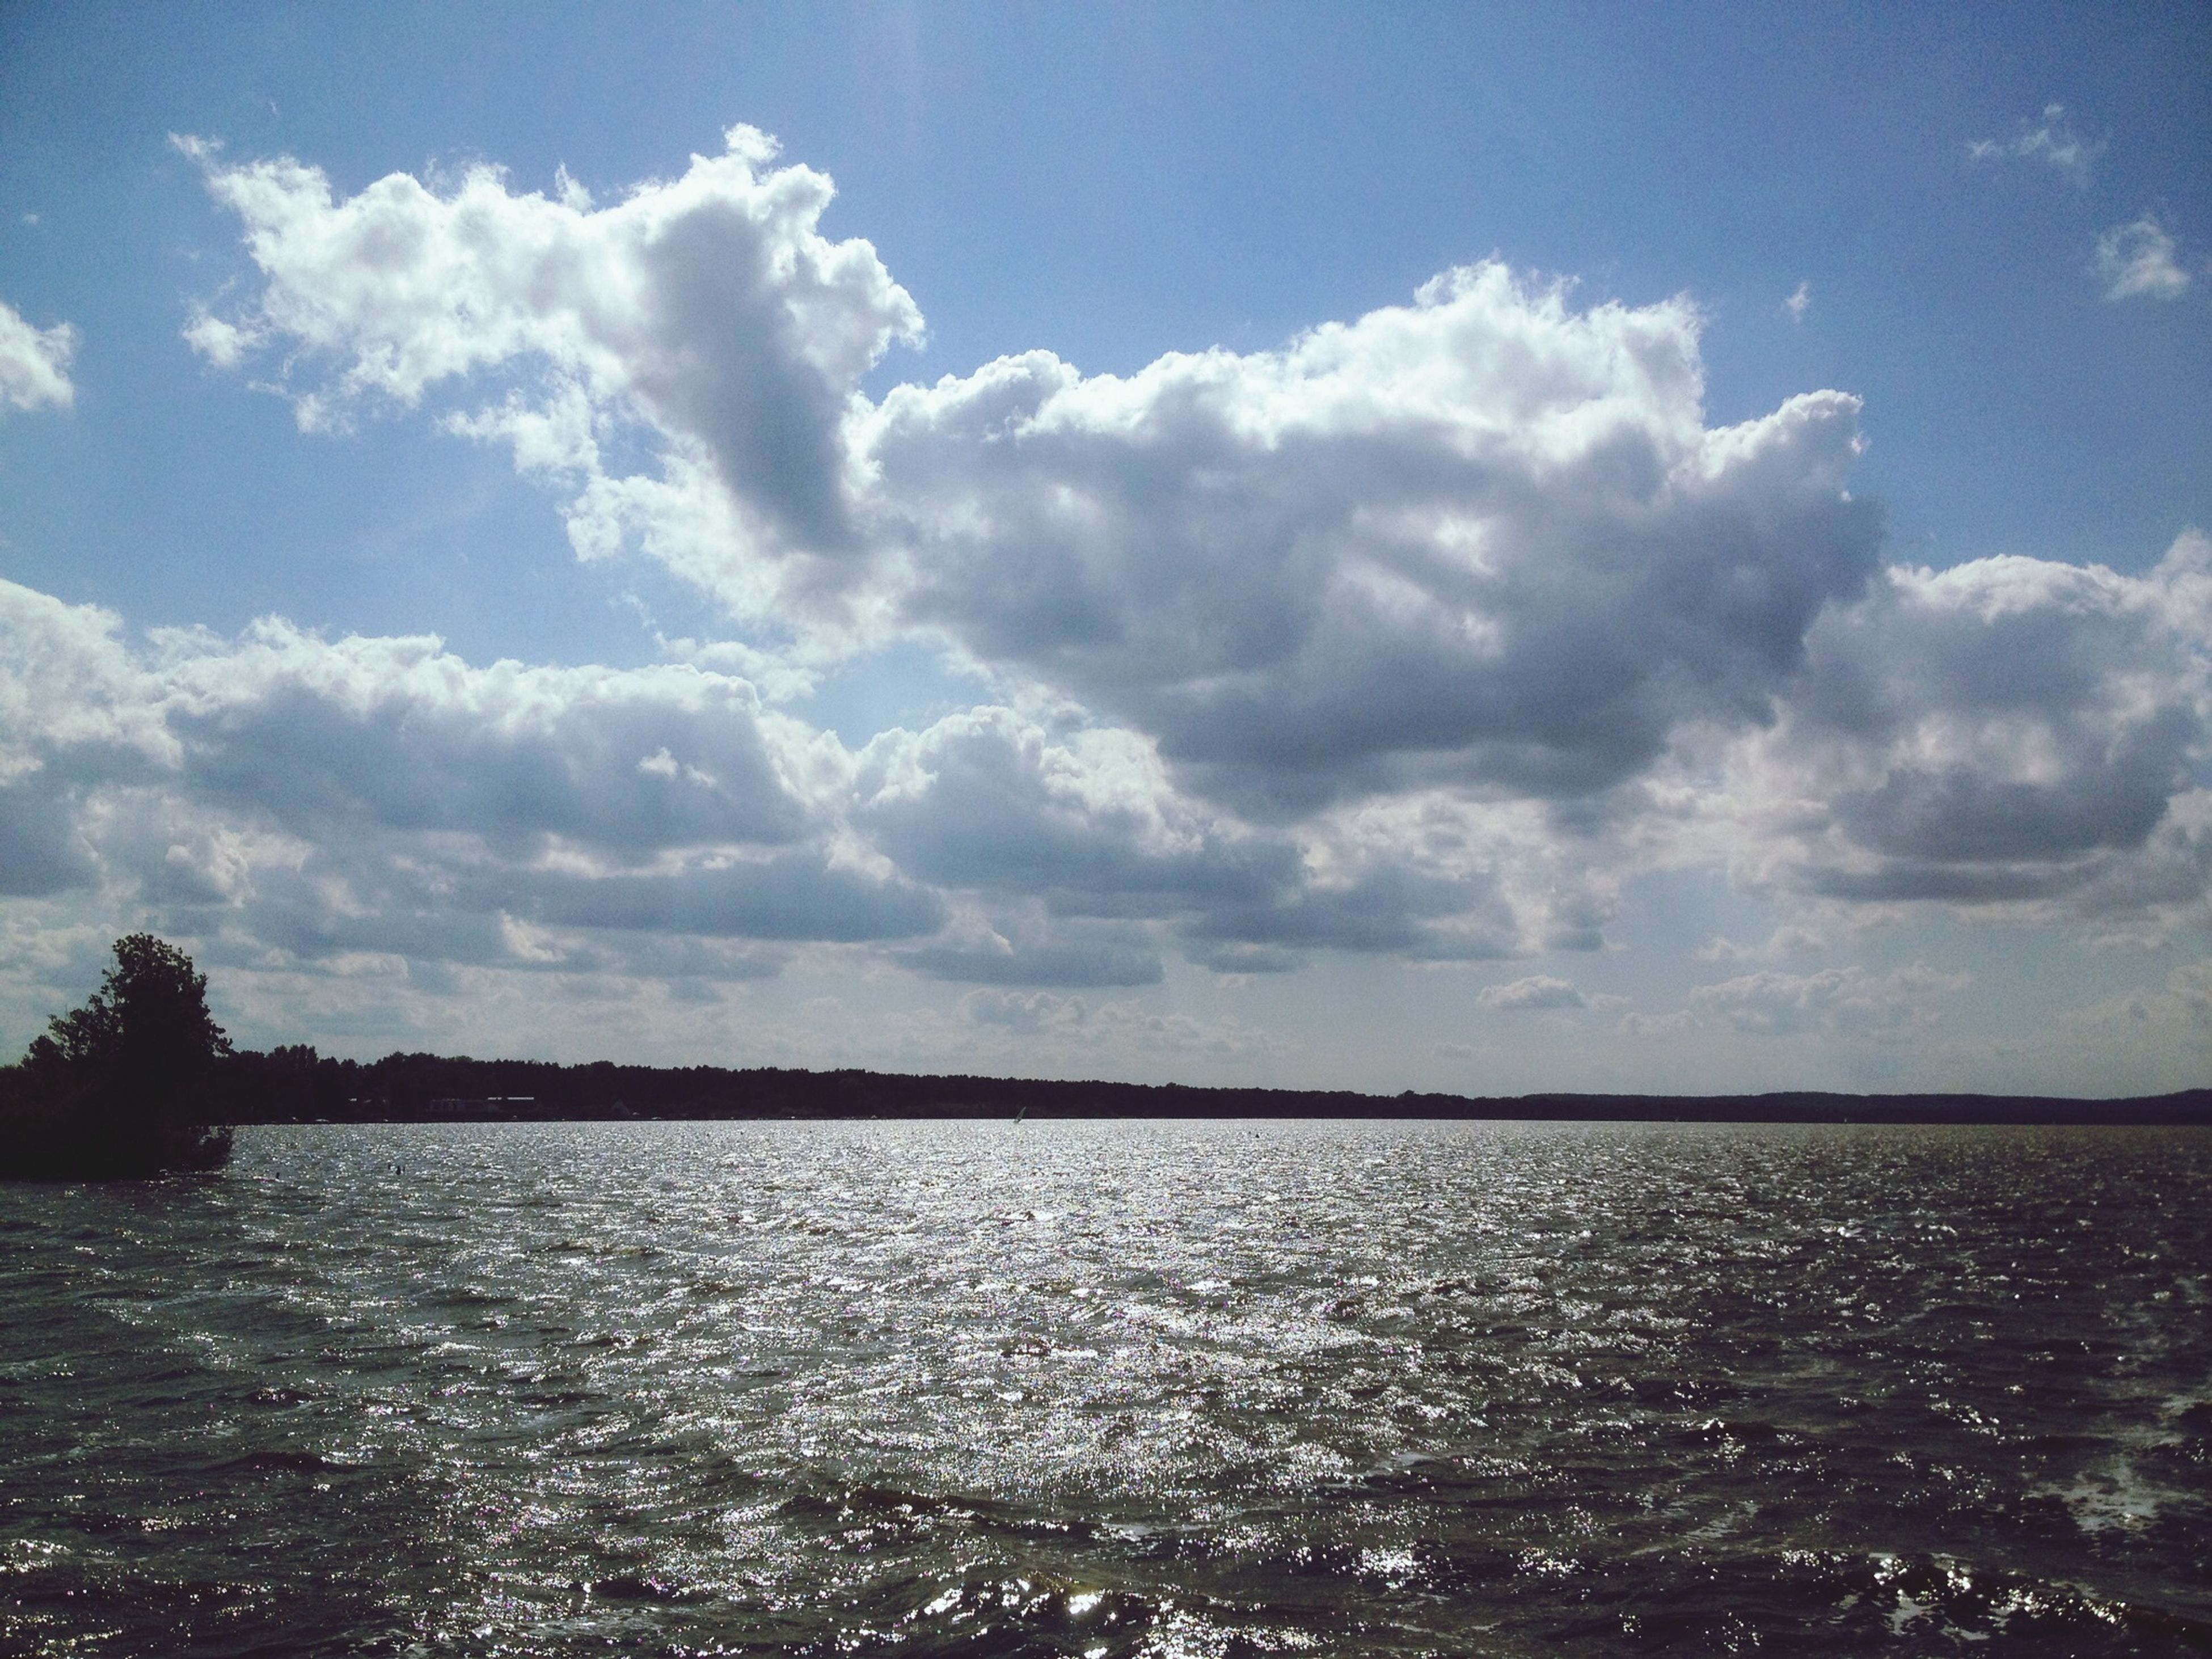 water, sky, tranquil scene, waterfront, tranquility, scenics, cloud - sky, beauty in nature, sea, rippled, nature, cloud, cloudy, idyllic, lake, outdoors, river, reflection, no people, sunlight